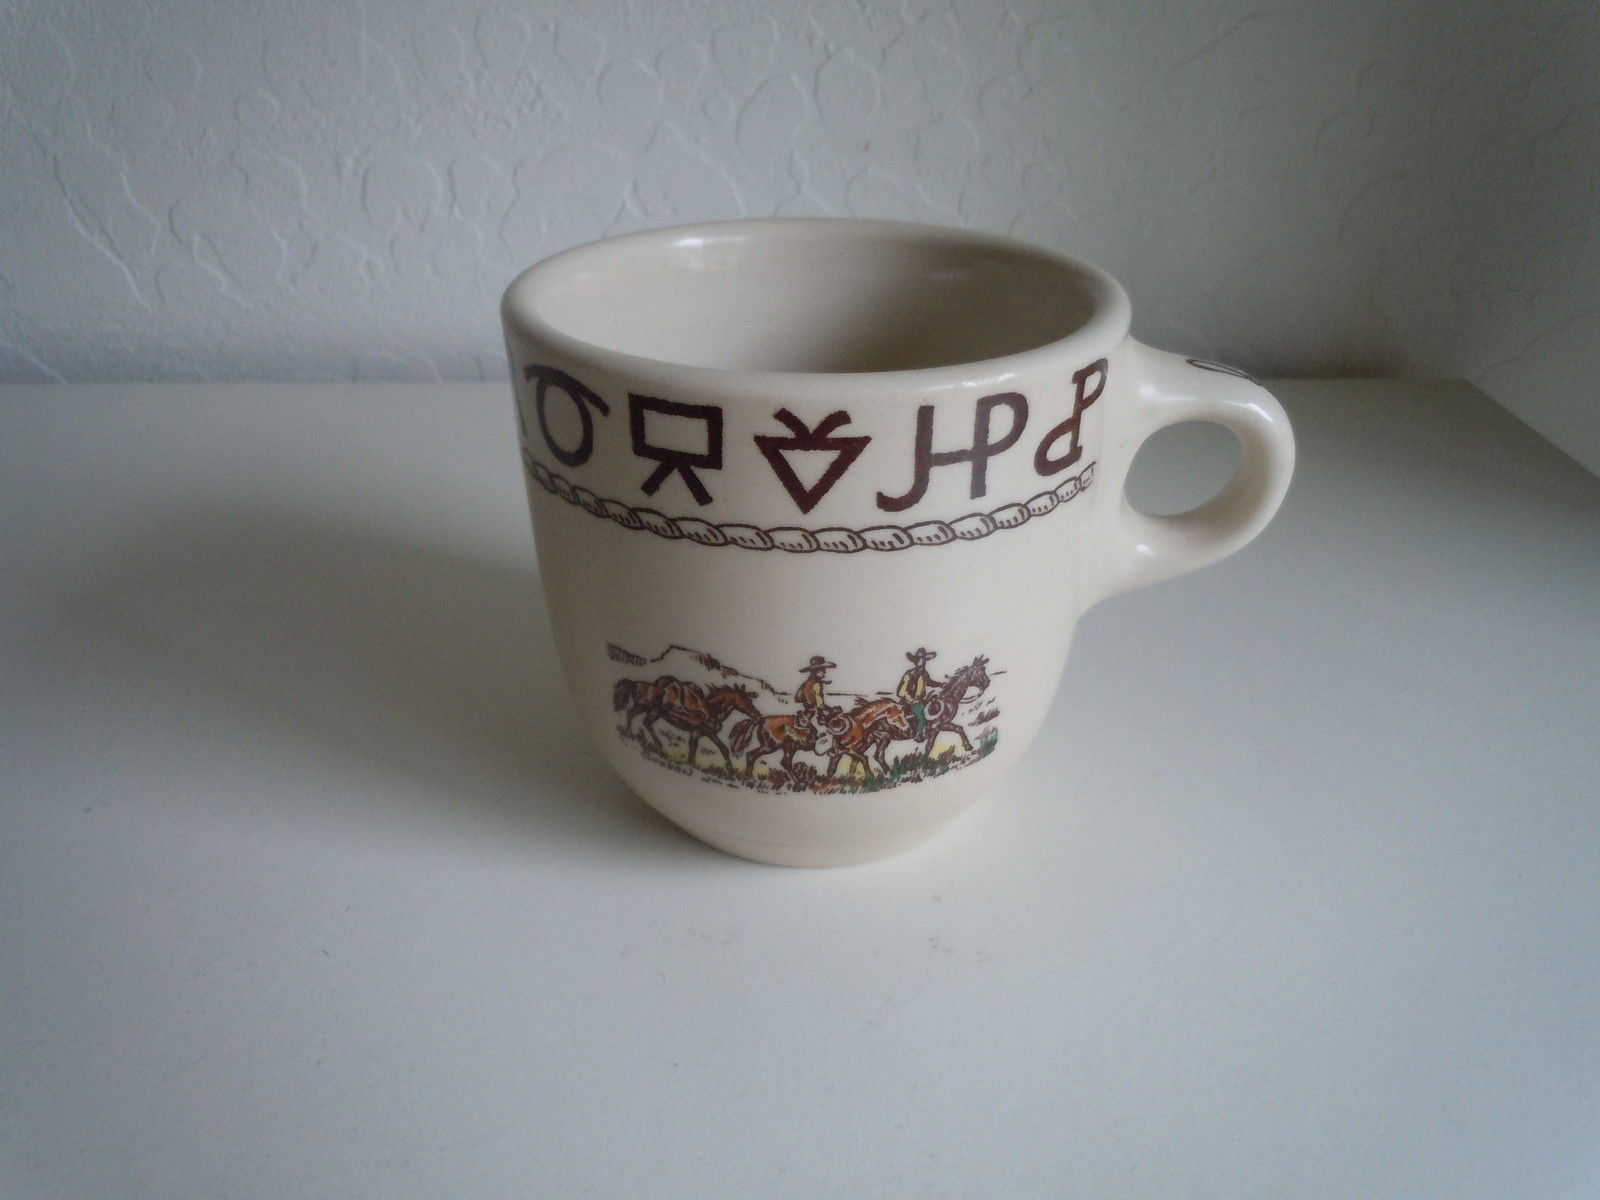 Wallace Rodeo Oversize cup Lassoing horse